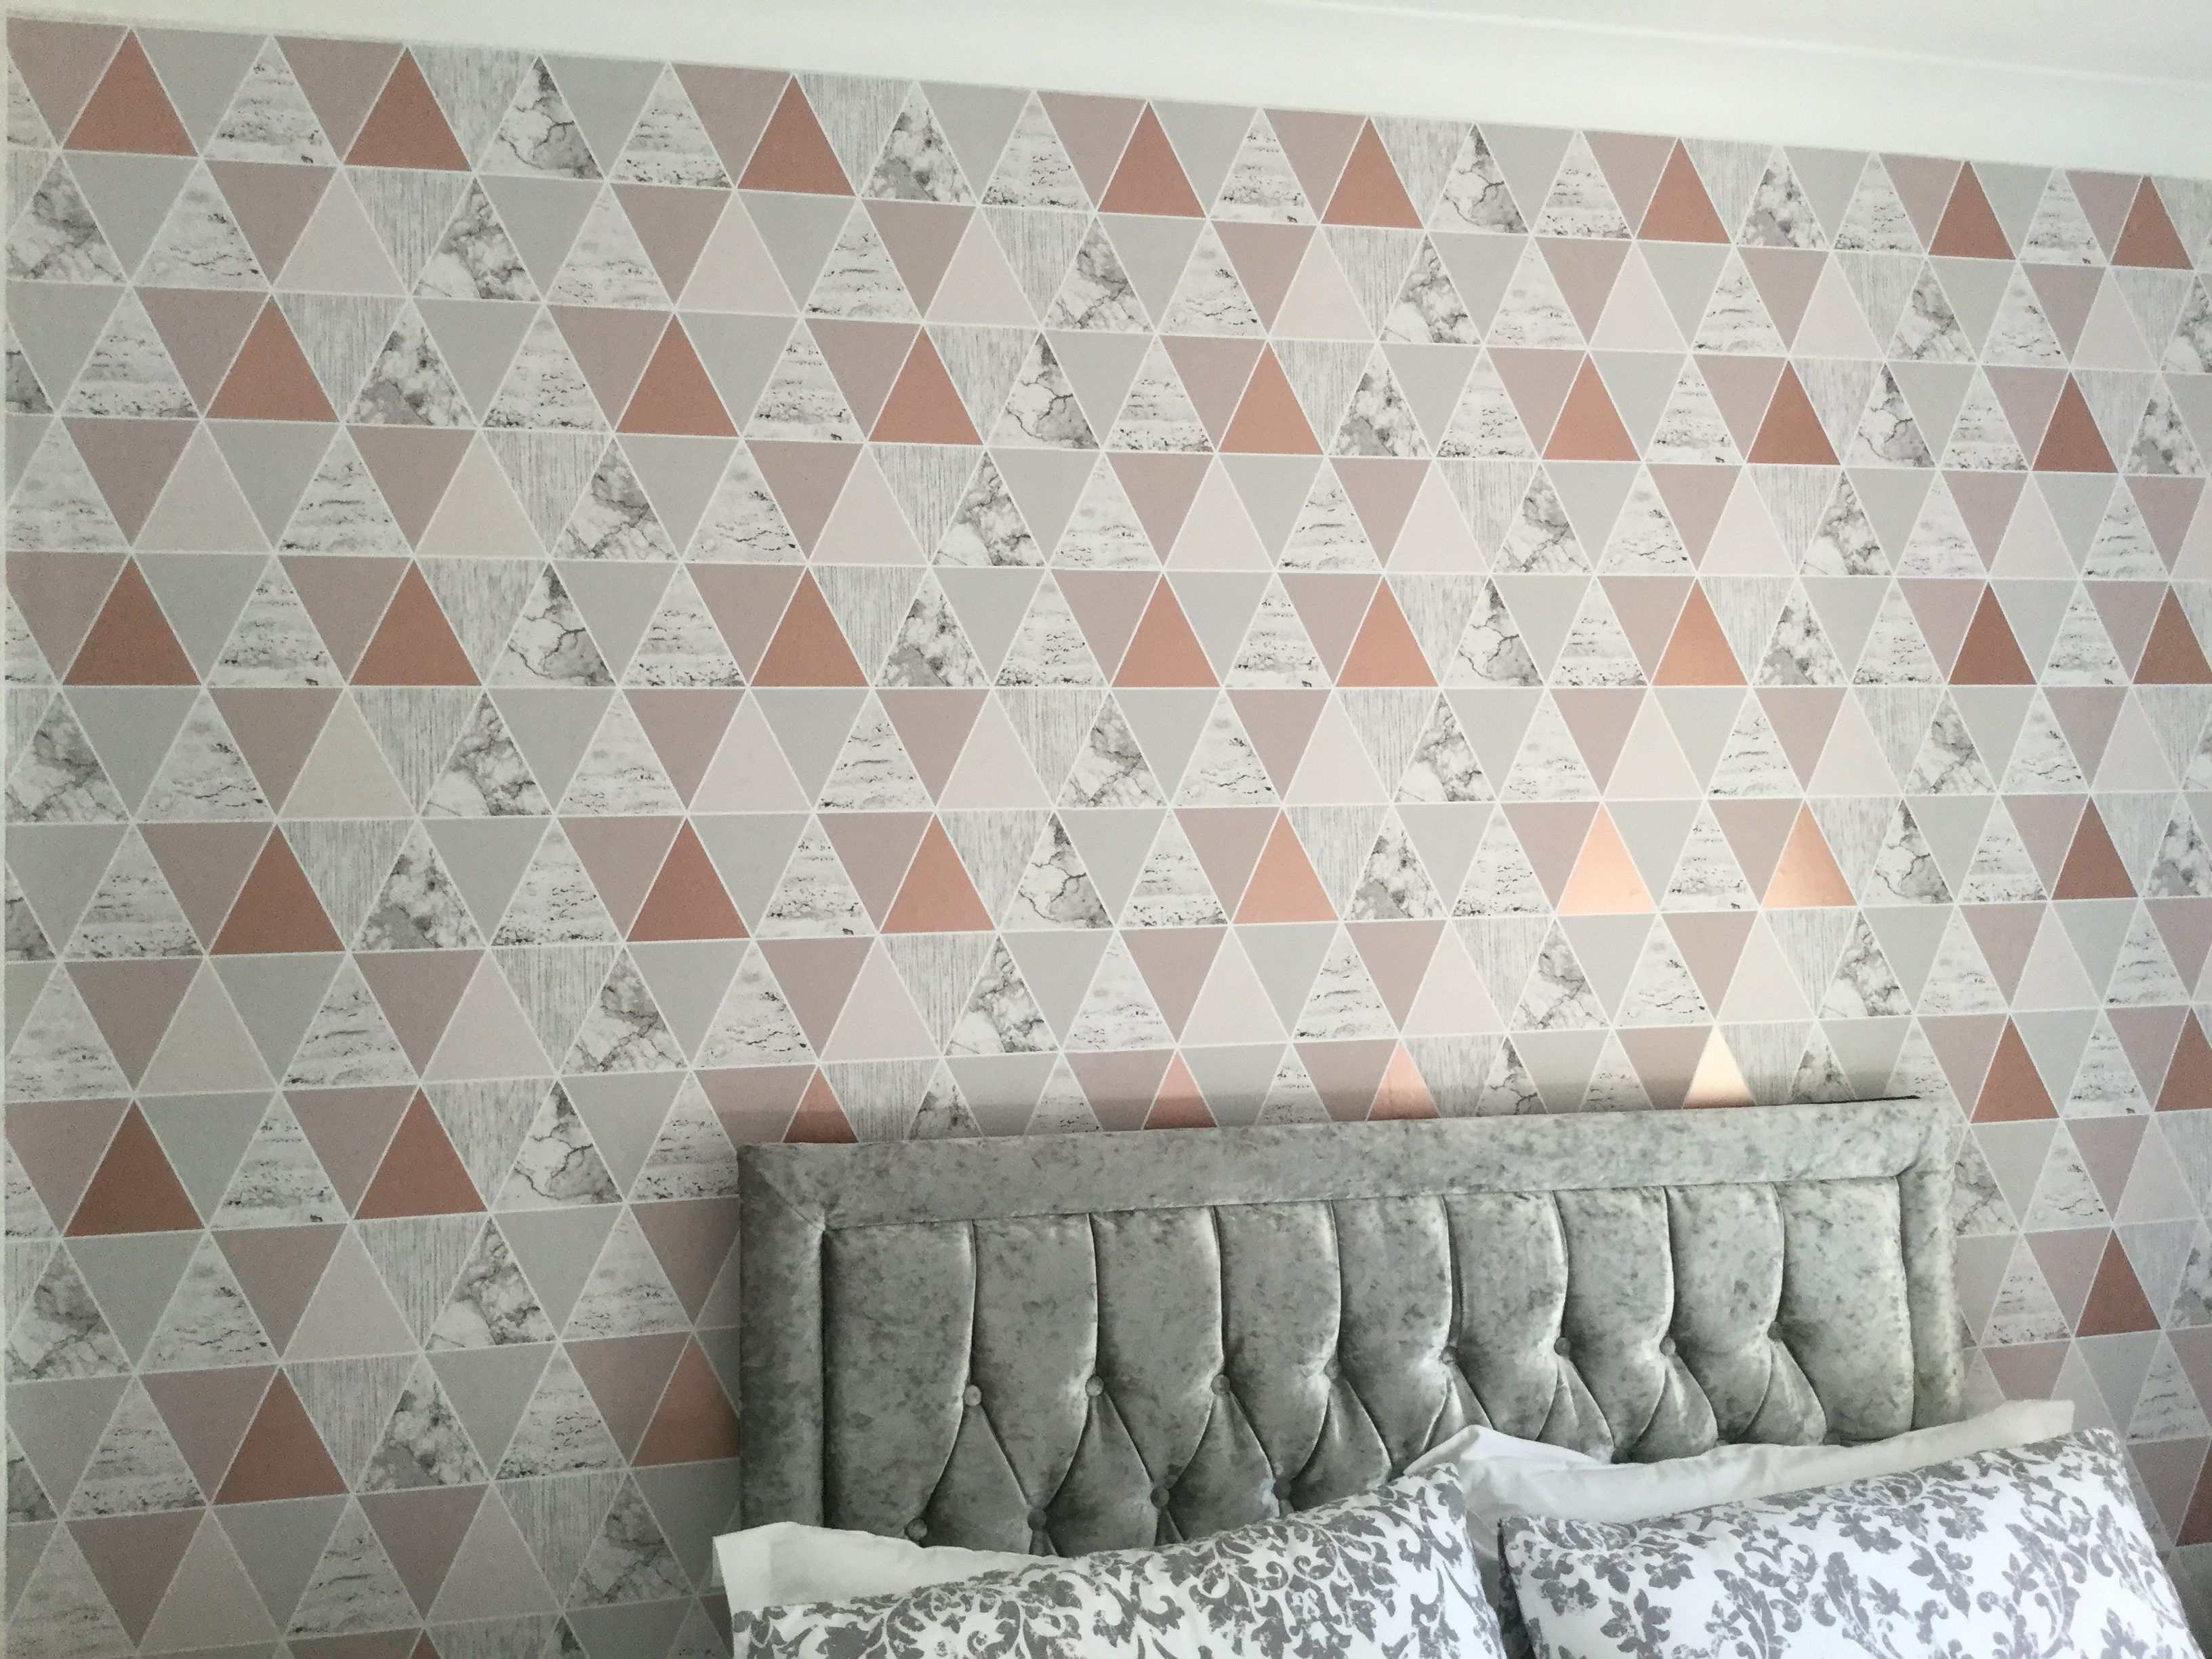 Bedroom Wallpaper Of The Year Rose Gold Reflection